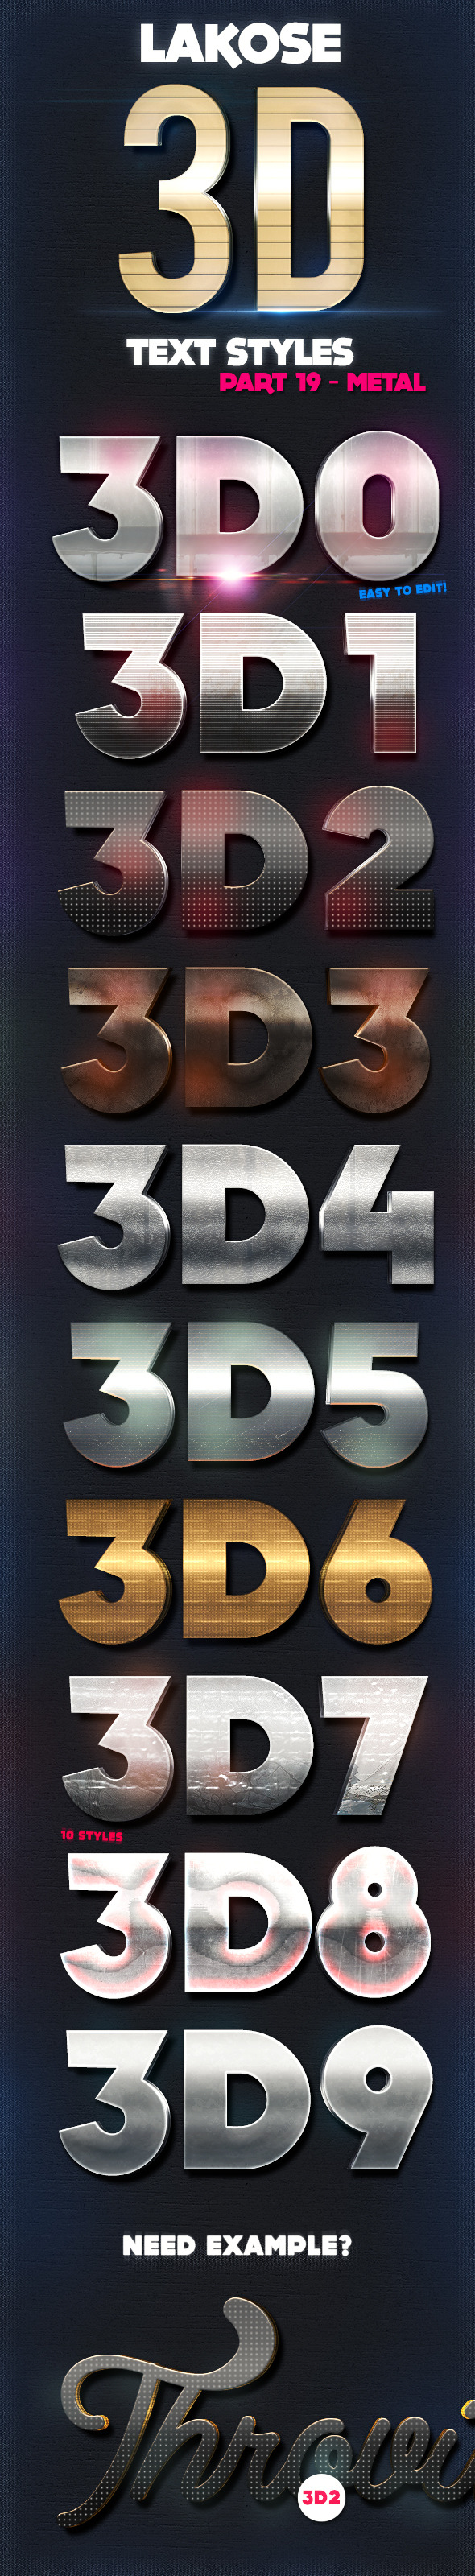 Lakose 3D Text Styles Part 19